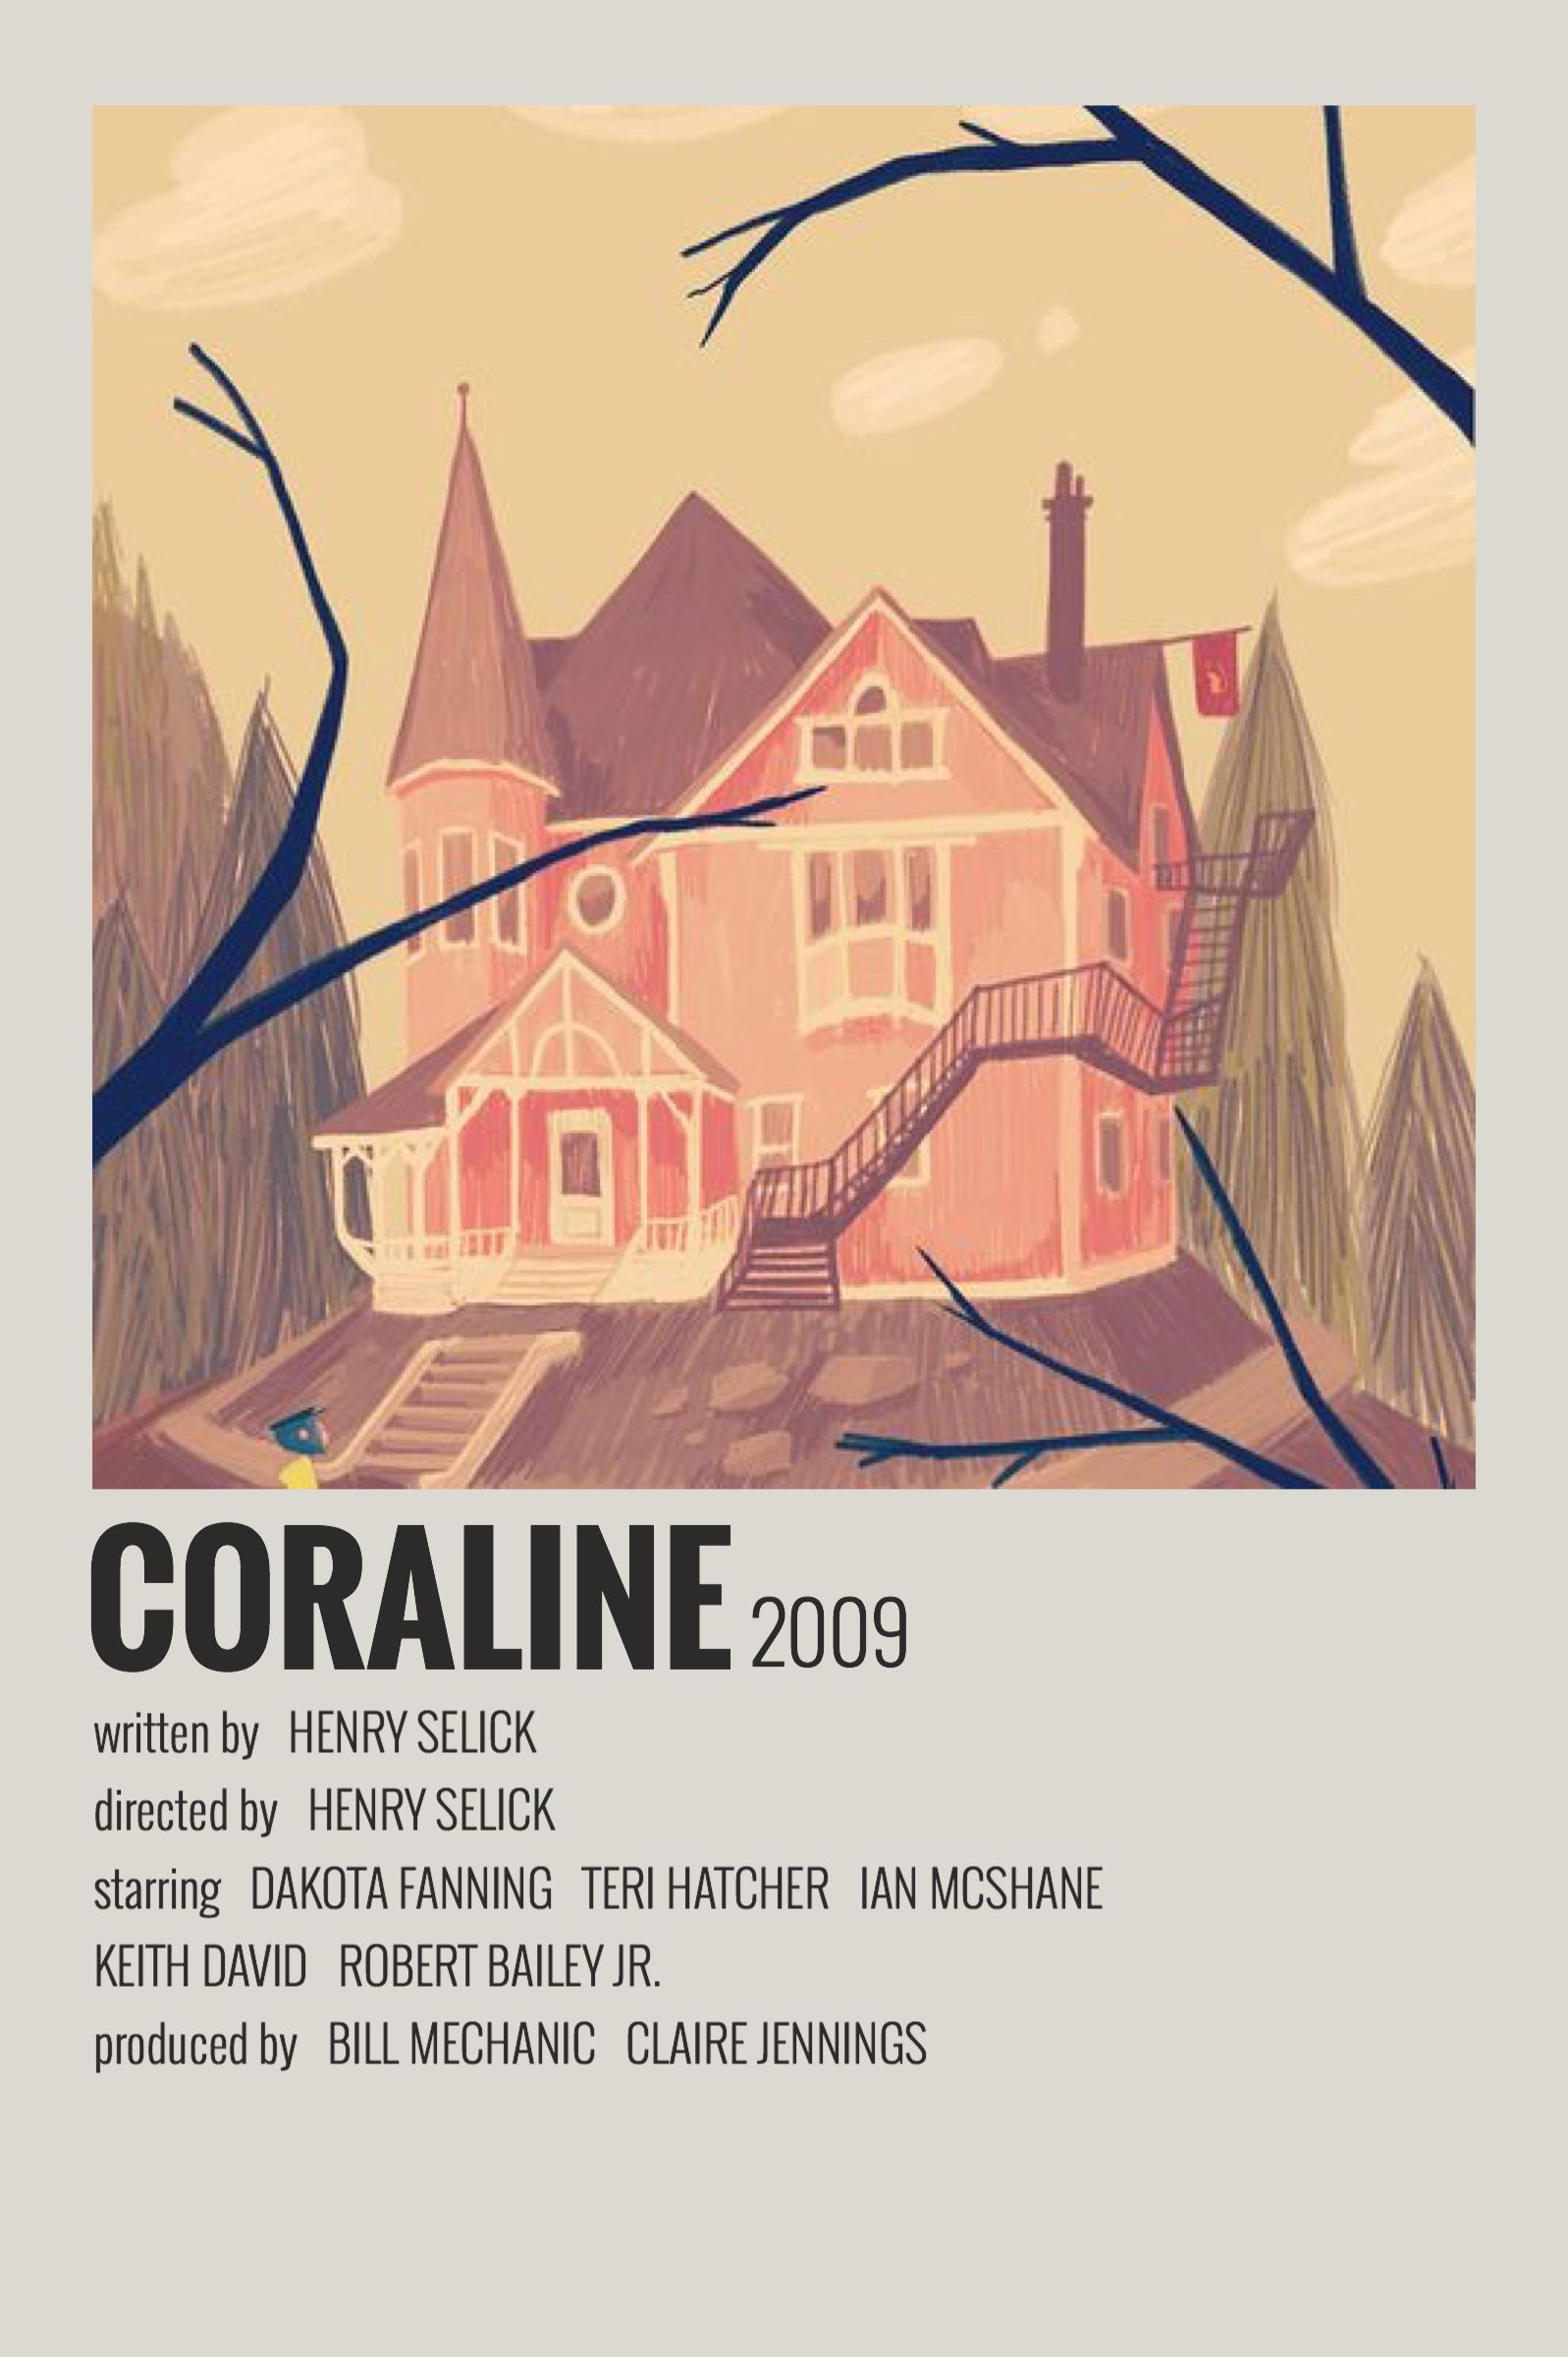 Alternative Minimalist Movie Polaroid Poster Coraline 2009 In 2020 Indie Movie Posters Film Poster Design Film Posters Vintage